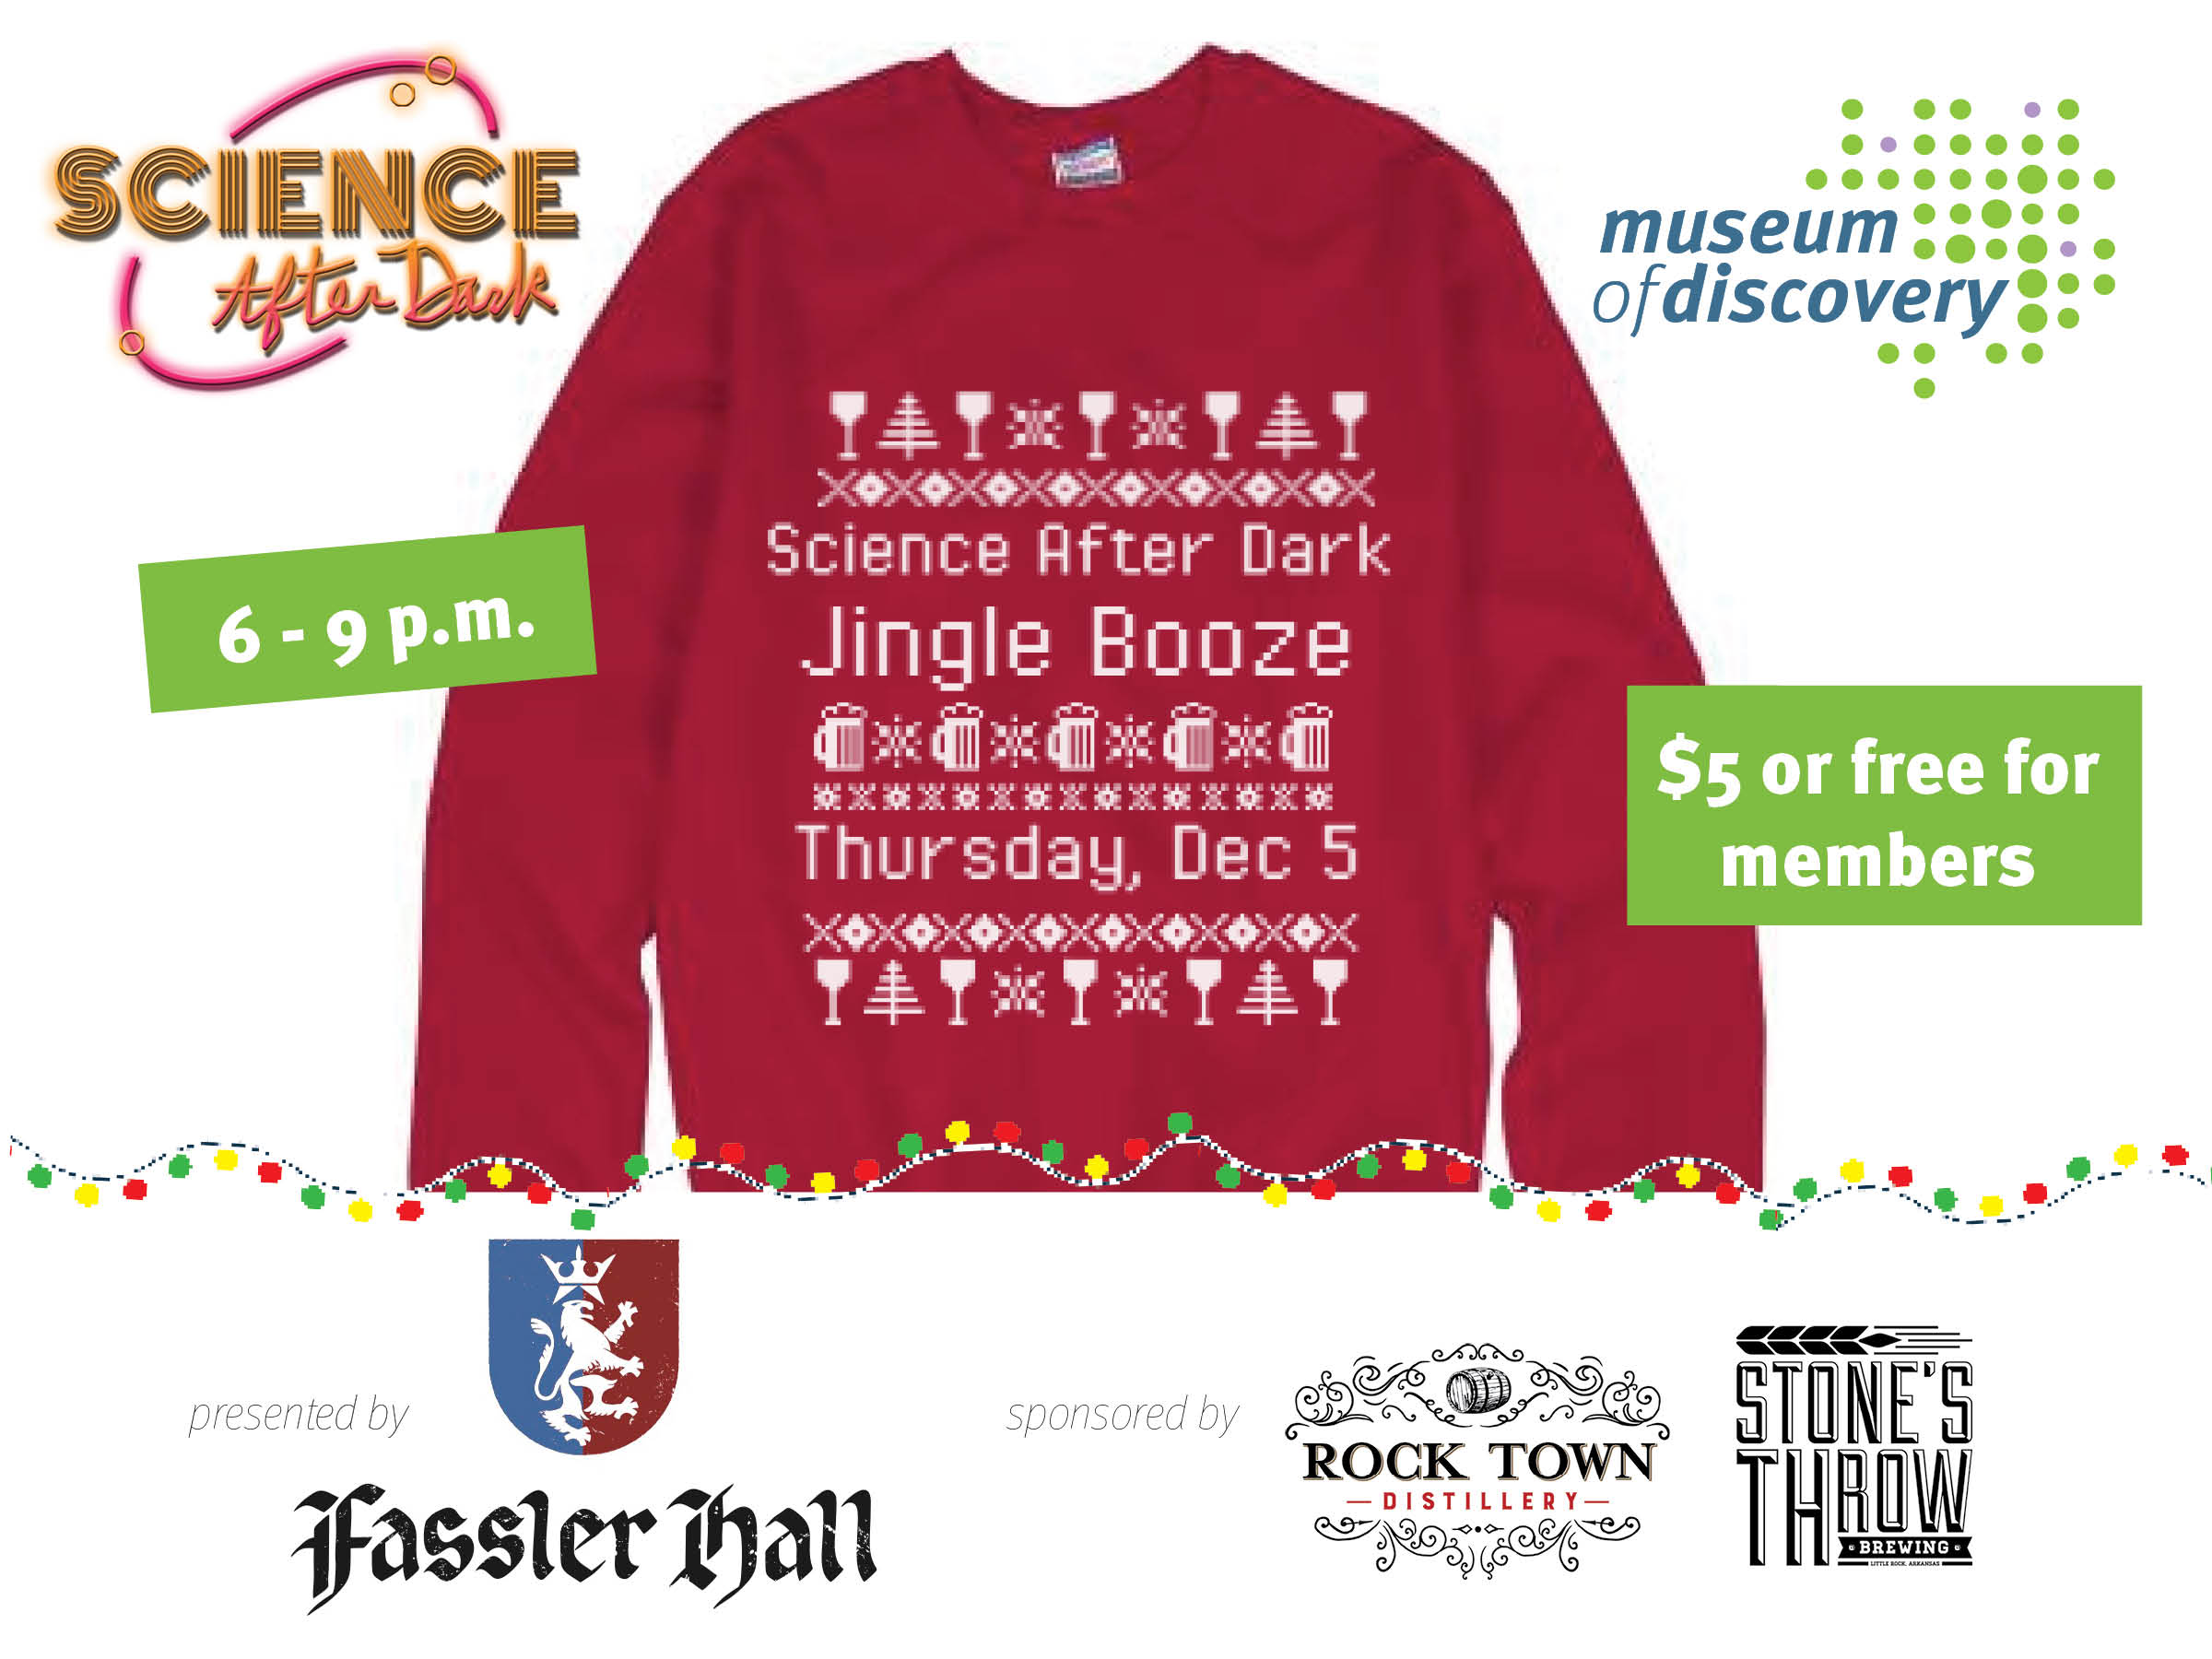 Science After Dark: Jingle Booze